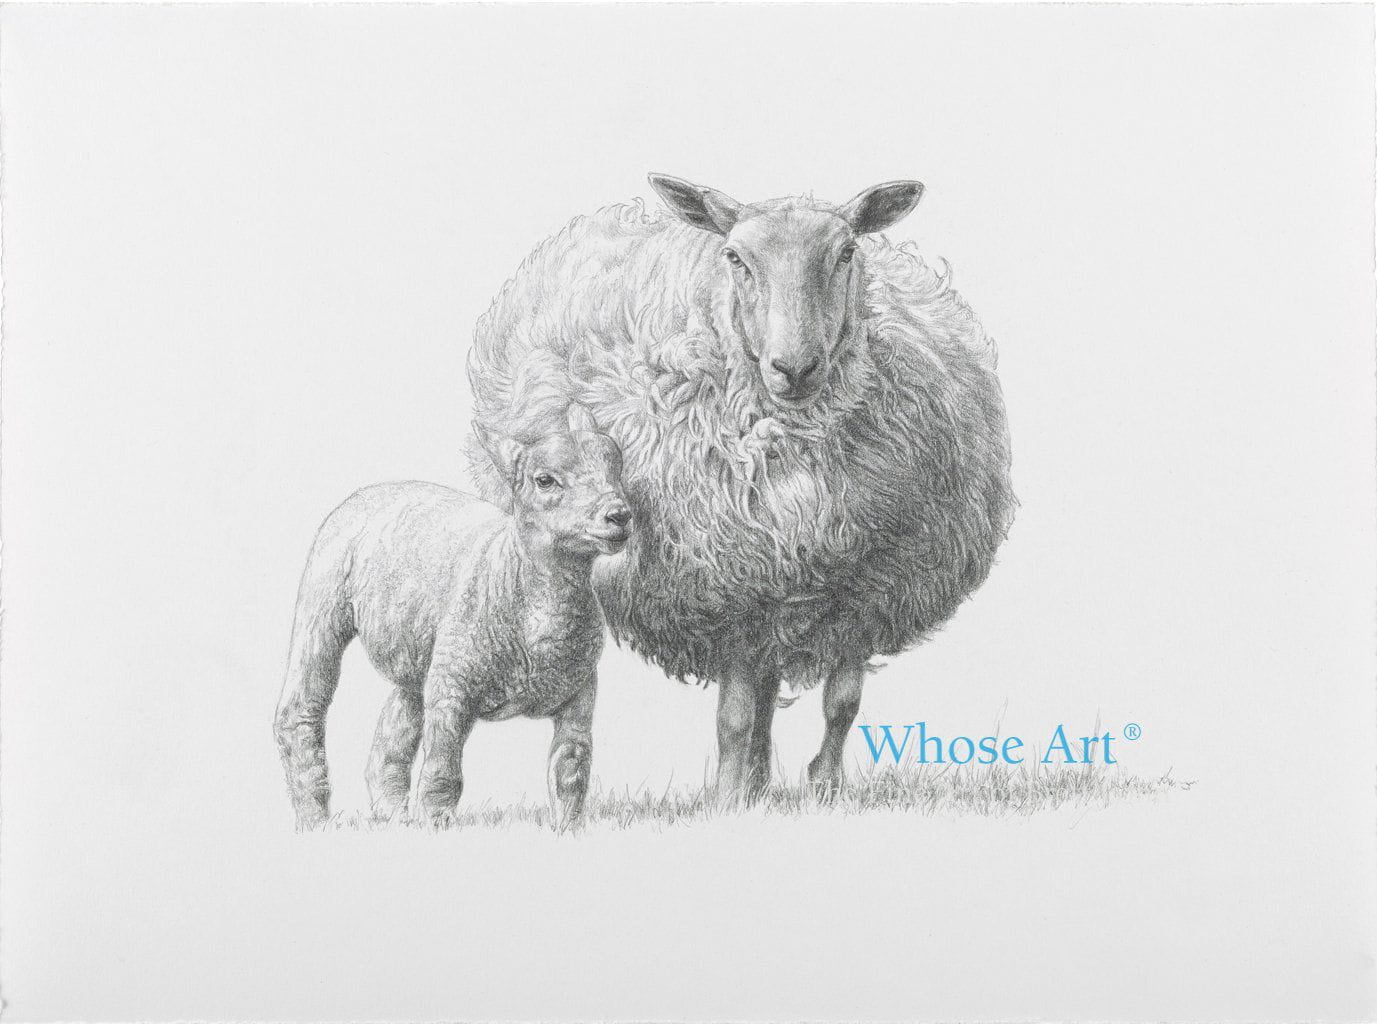 Black & white sheep card of a pencil drawing of a sheep & lamb together in Spring. The lamb is nestling into the sheep.